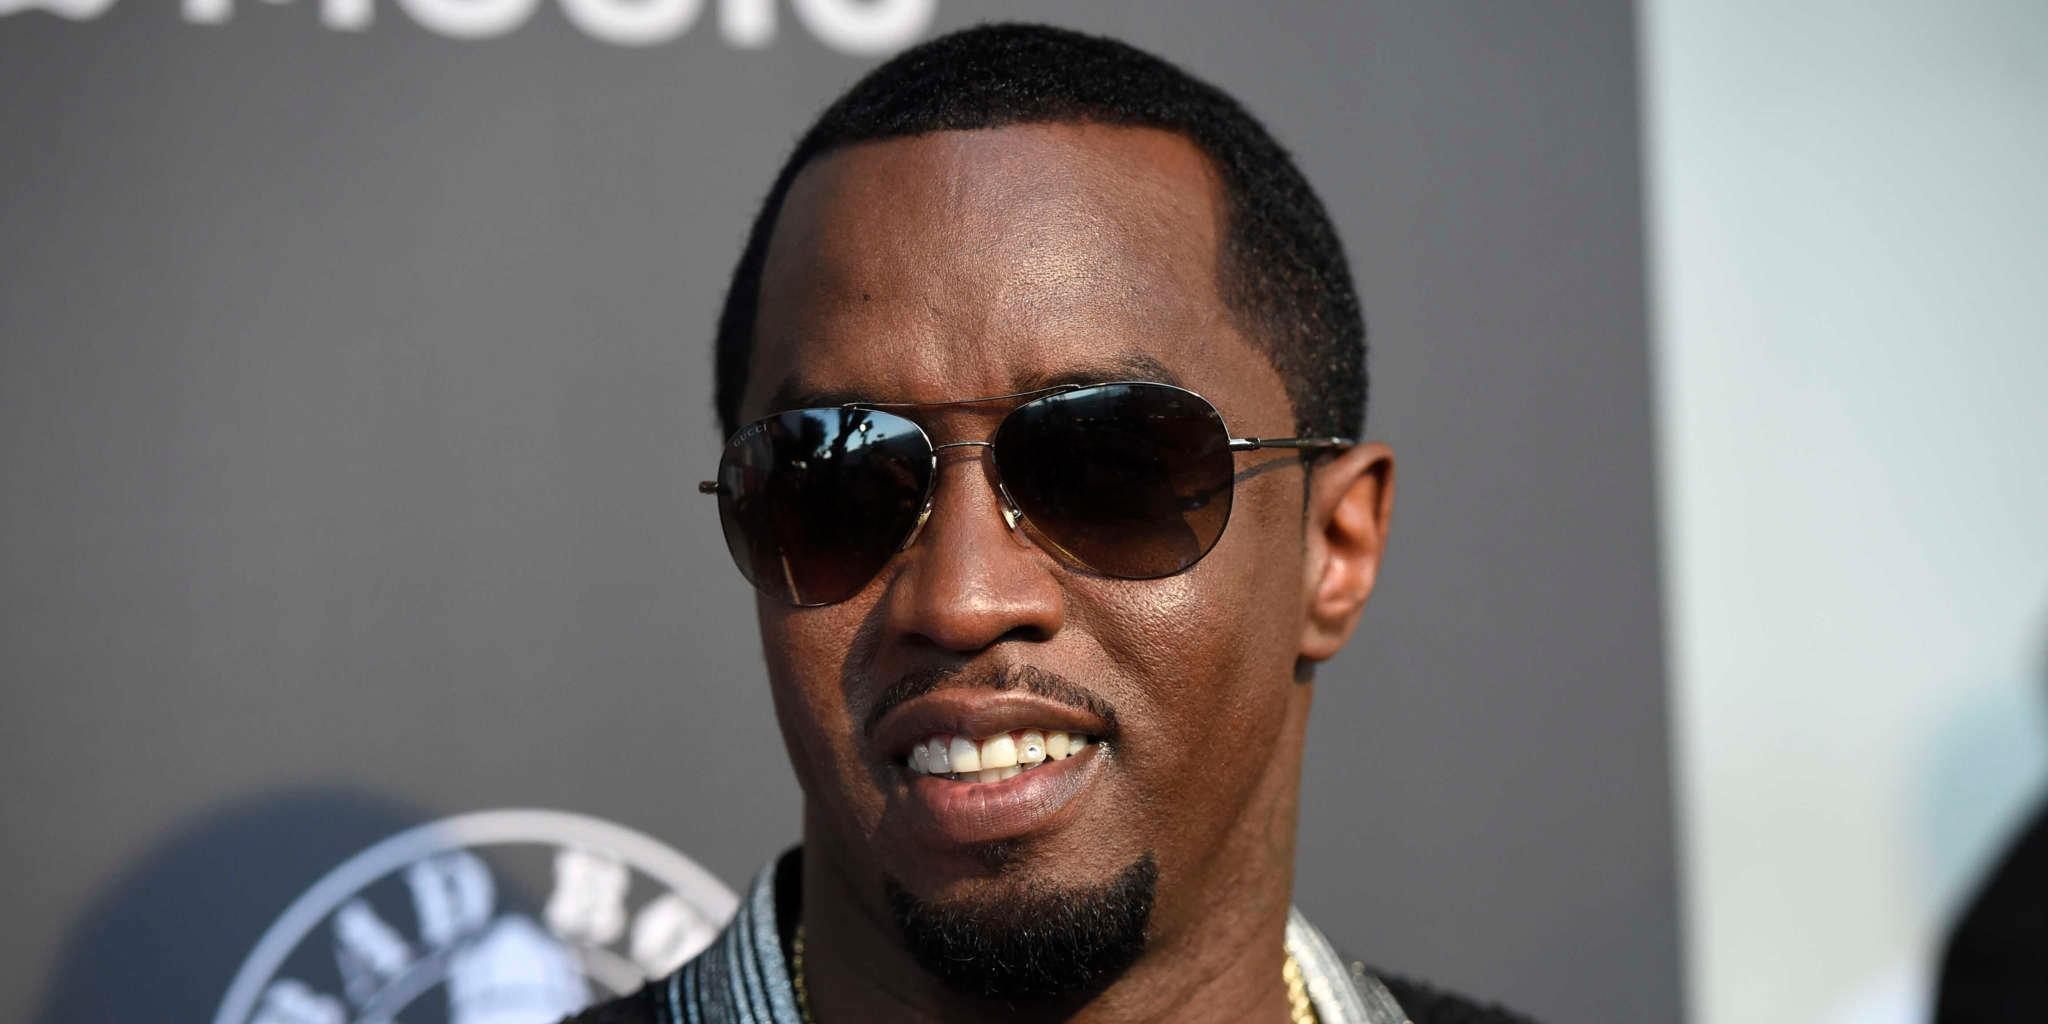 Diddy Offers Support To The Armenian People, But Gets Massive Backlash From Some Fans